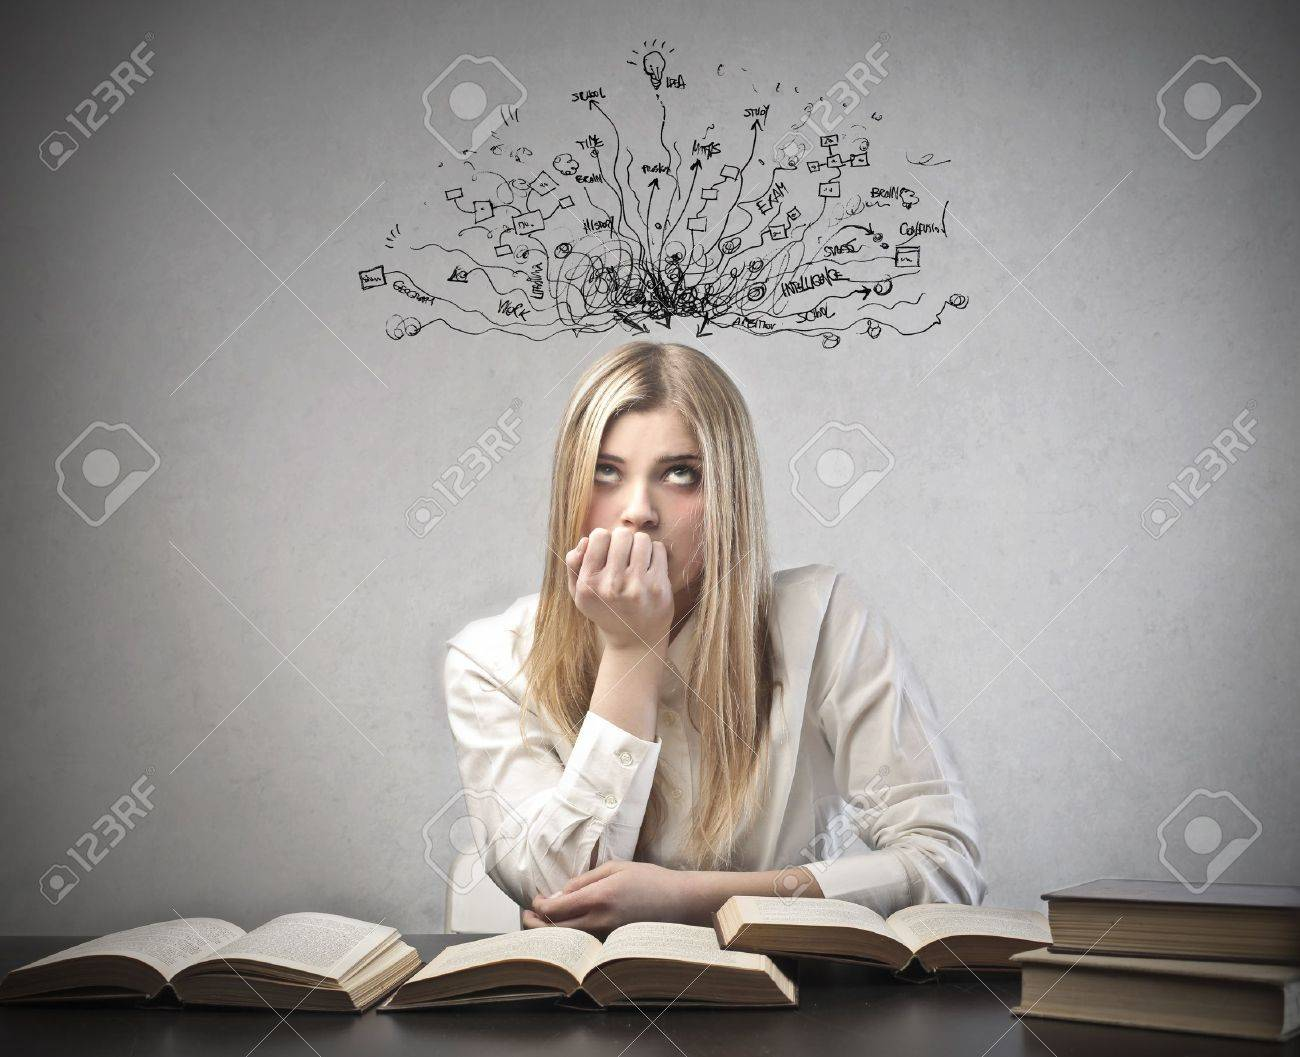 Young student with thoughtful expression and tangled lines and symbols coming out of her head Stock Photo - 12802888